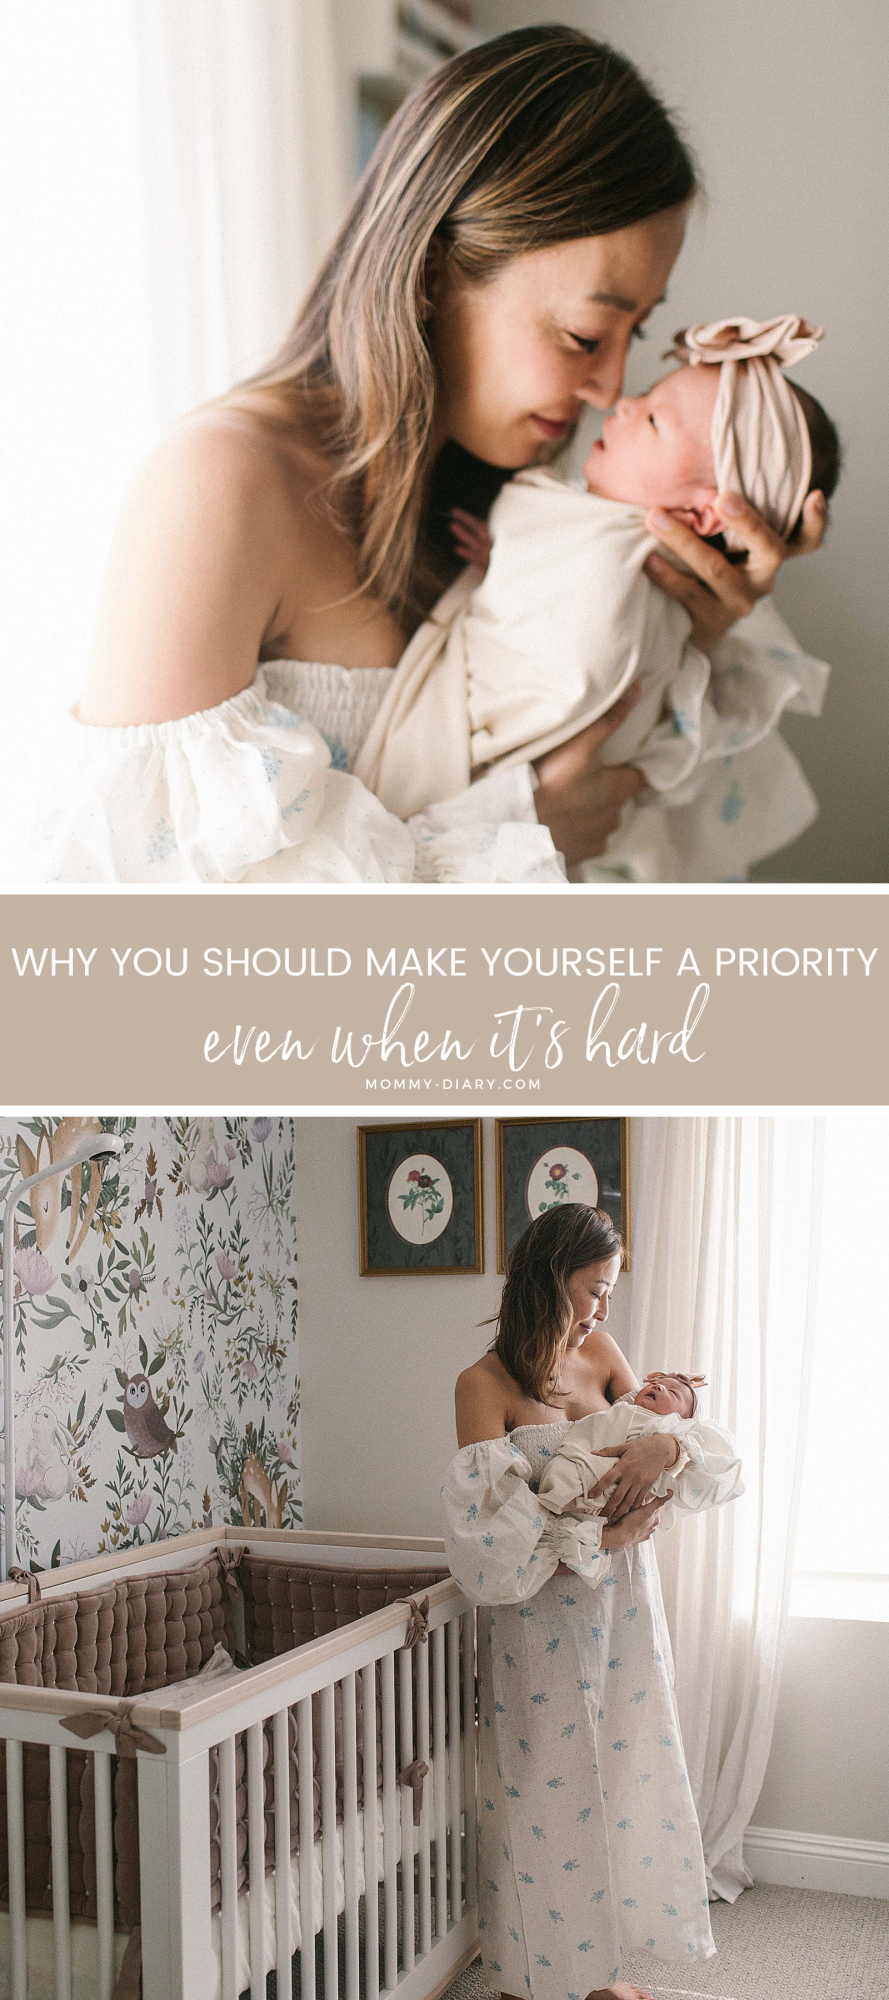 Why You Should Make Yourself a Priority